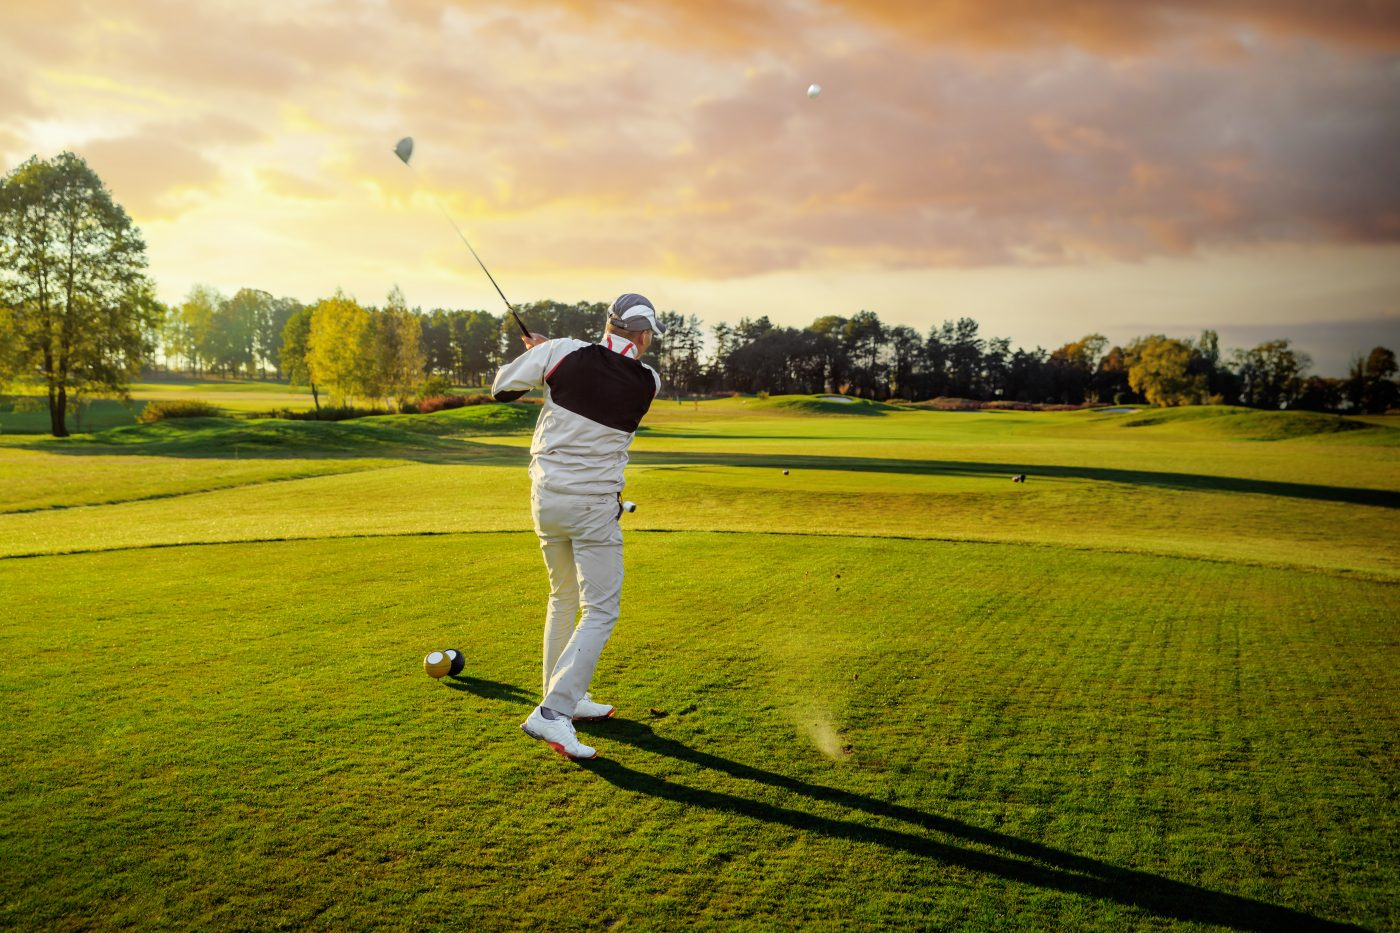 golf is among the things to do in Villa Rica